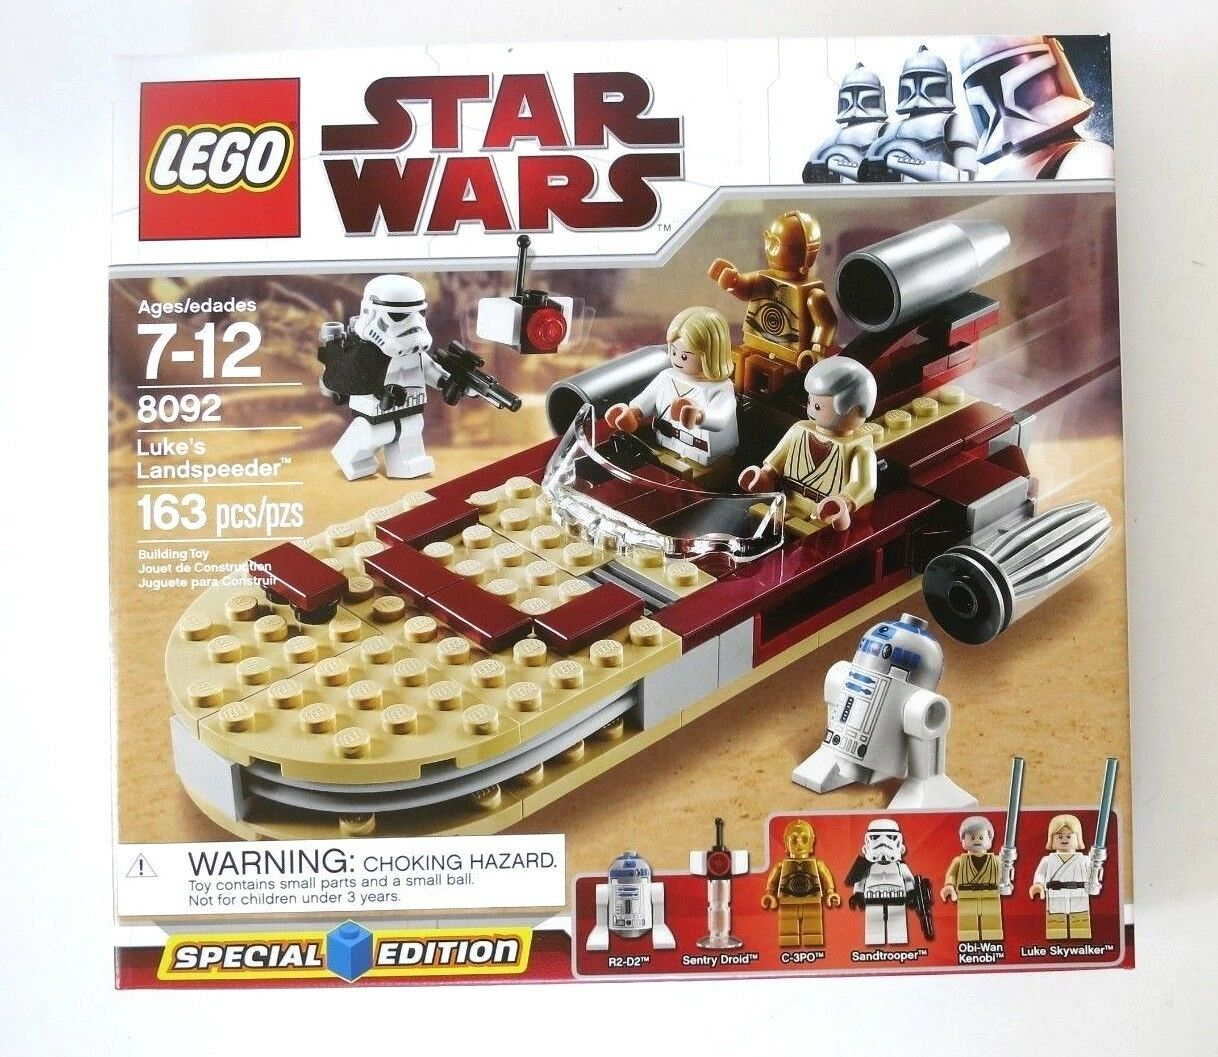 LEGO STAR WARS SET 8092 LUKE'S LANDSPEEDER RETIROT NEW FACTORY SEALED